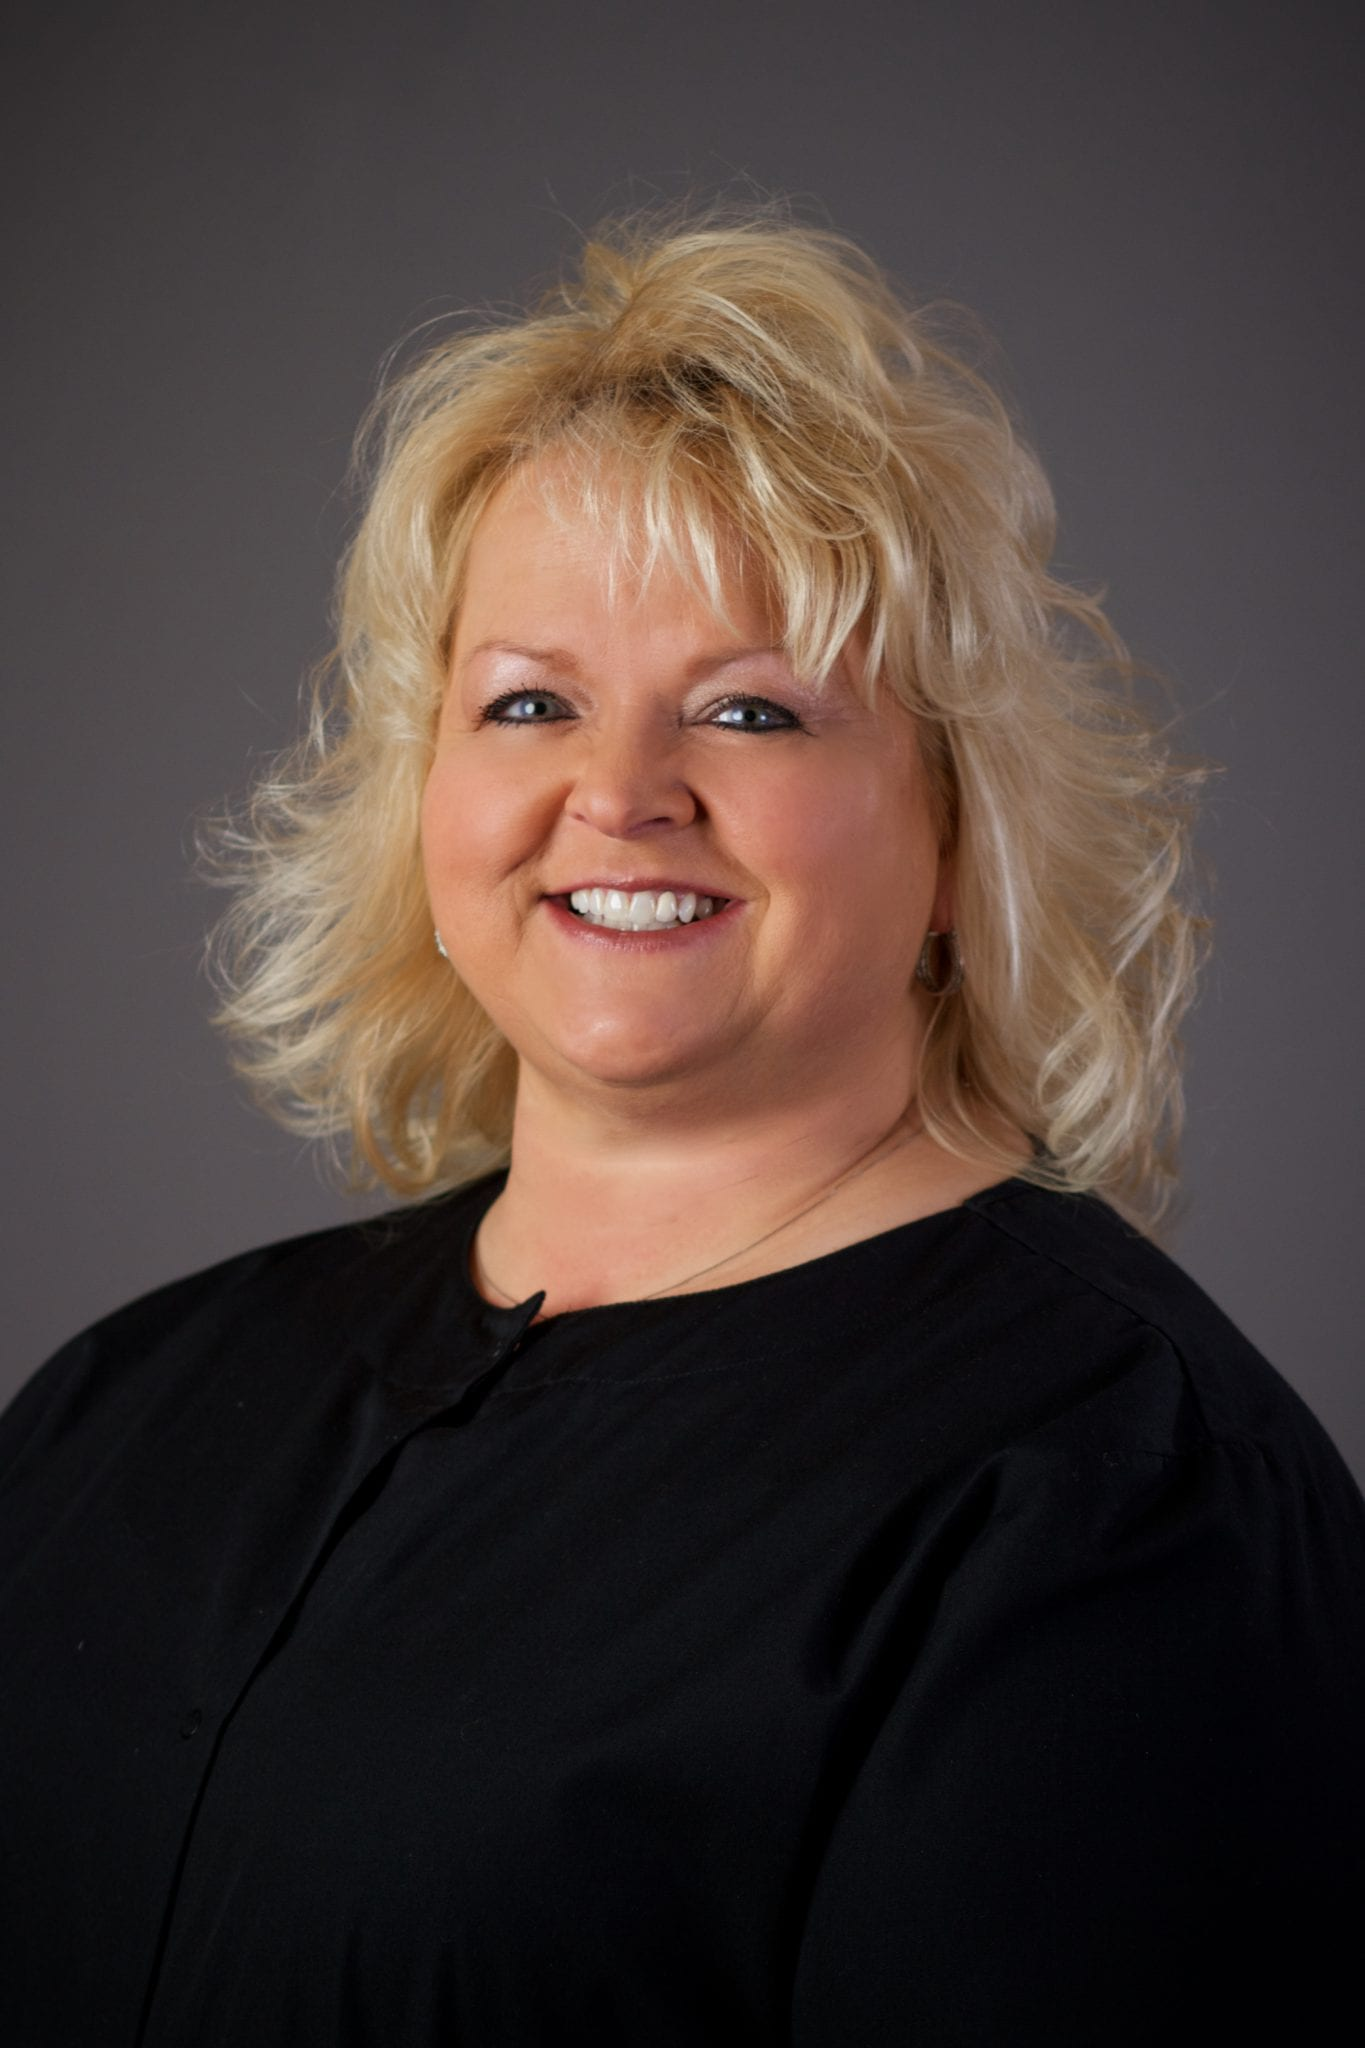 Peggy who is a Dental Assistant at Birdwell and Guffey Family Dentistry in South Knoxville